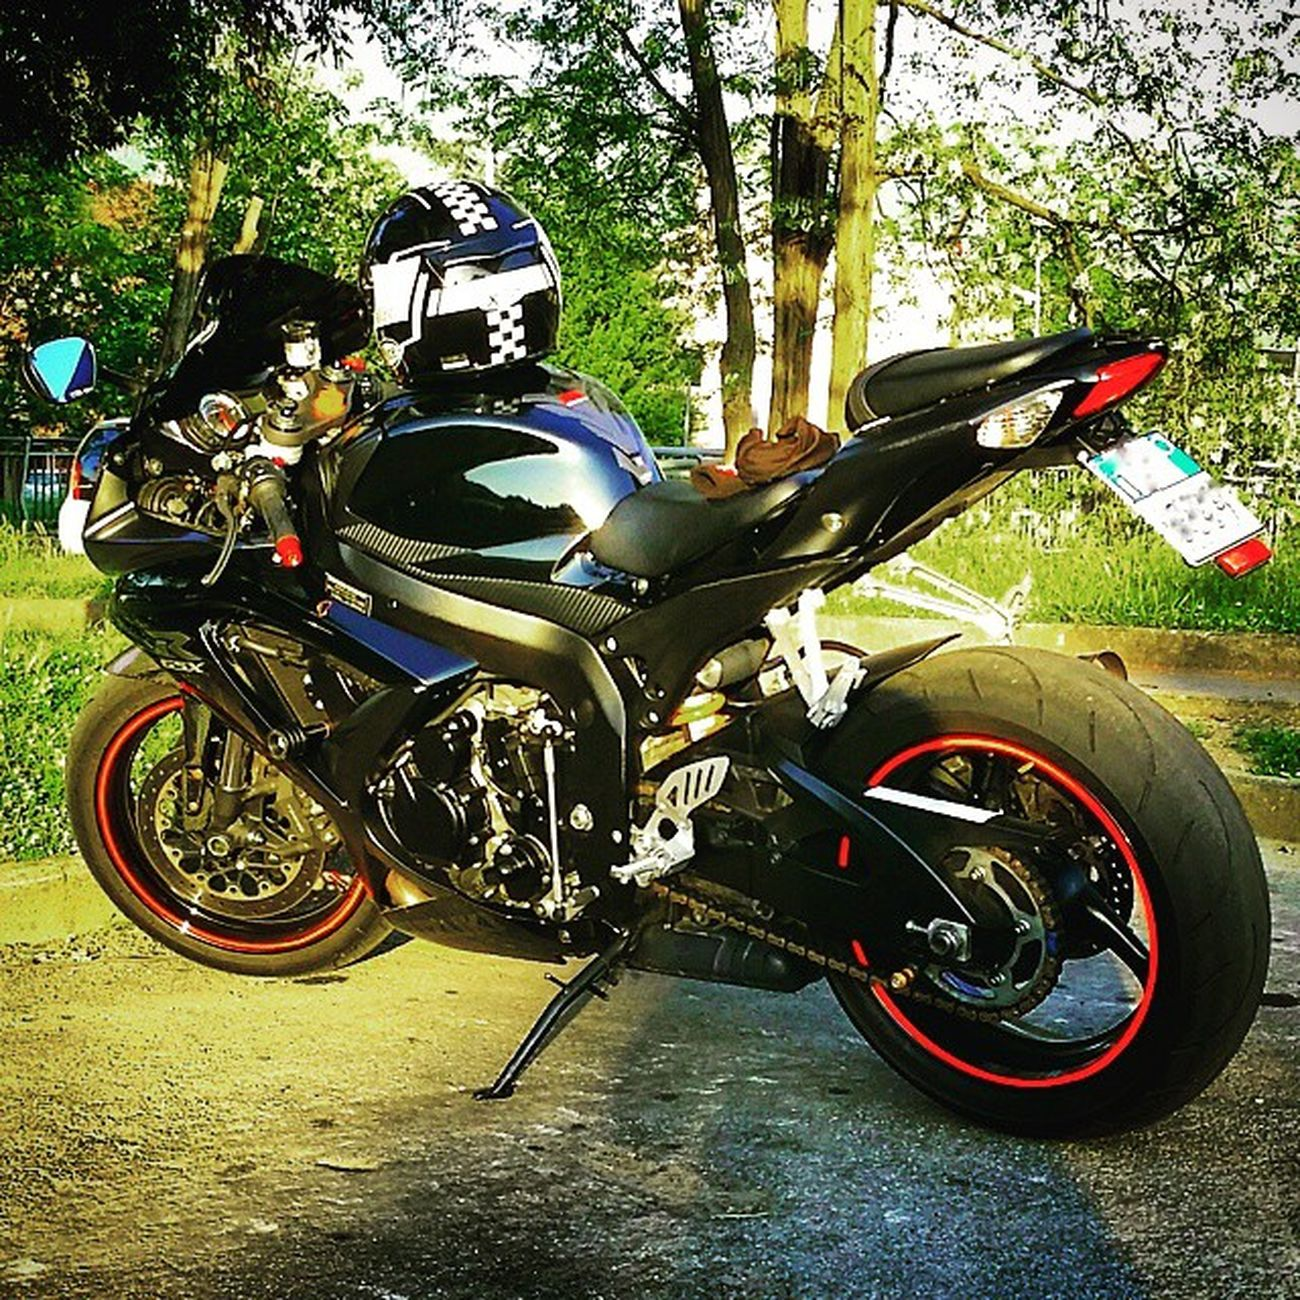 The more I see you, the more I fall in love with you. The only treatment against the depression. Suzuki GSXR750 InstaMotorcycle Instabike Bikersaroundtheglobe Bikersofinstagram Bikers_around_the_globe Bikers_network Bikelife Bikeswithoutlimits Bike Throttlesociety Shift_life Trackbike Trackracerx Sportsbikelife Sportbikesignin Sportsbikesignin Superbikesofinstagram Superbikeitalia Motorcycle_mafia Motorcycle Powerbikes